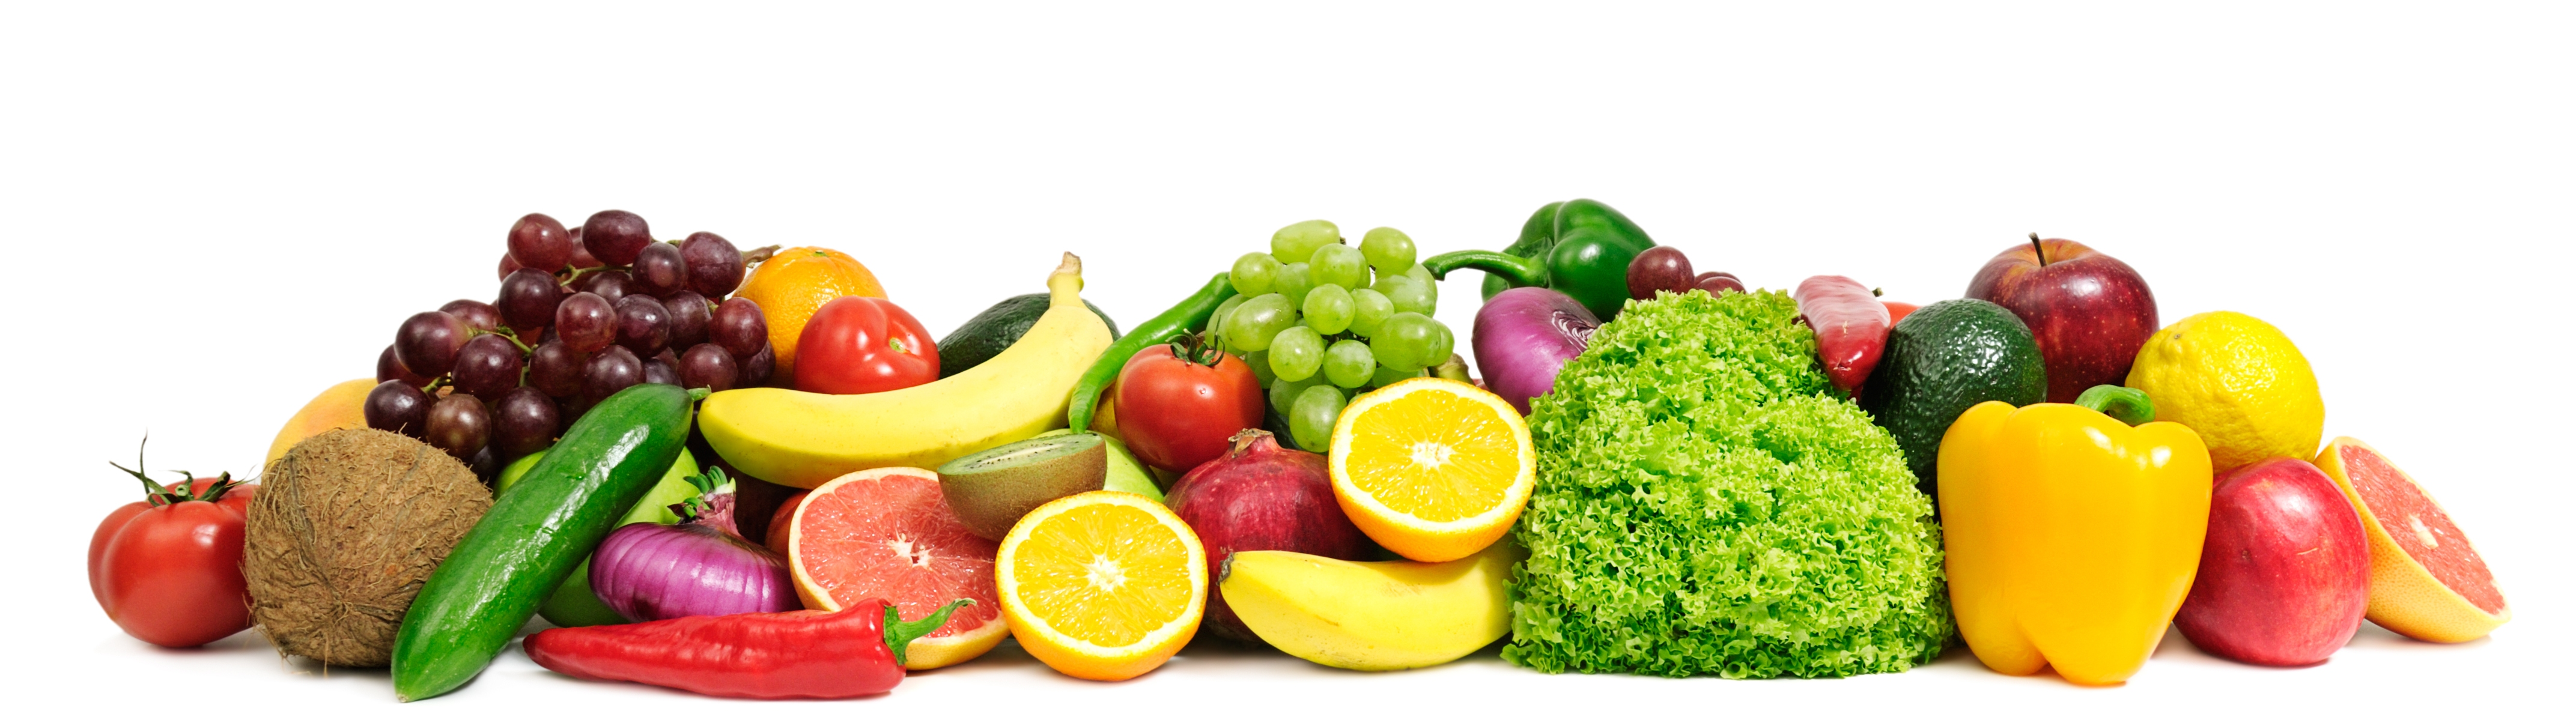 fruits-and-vegetables-narrow